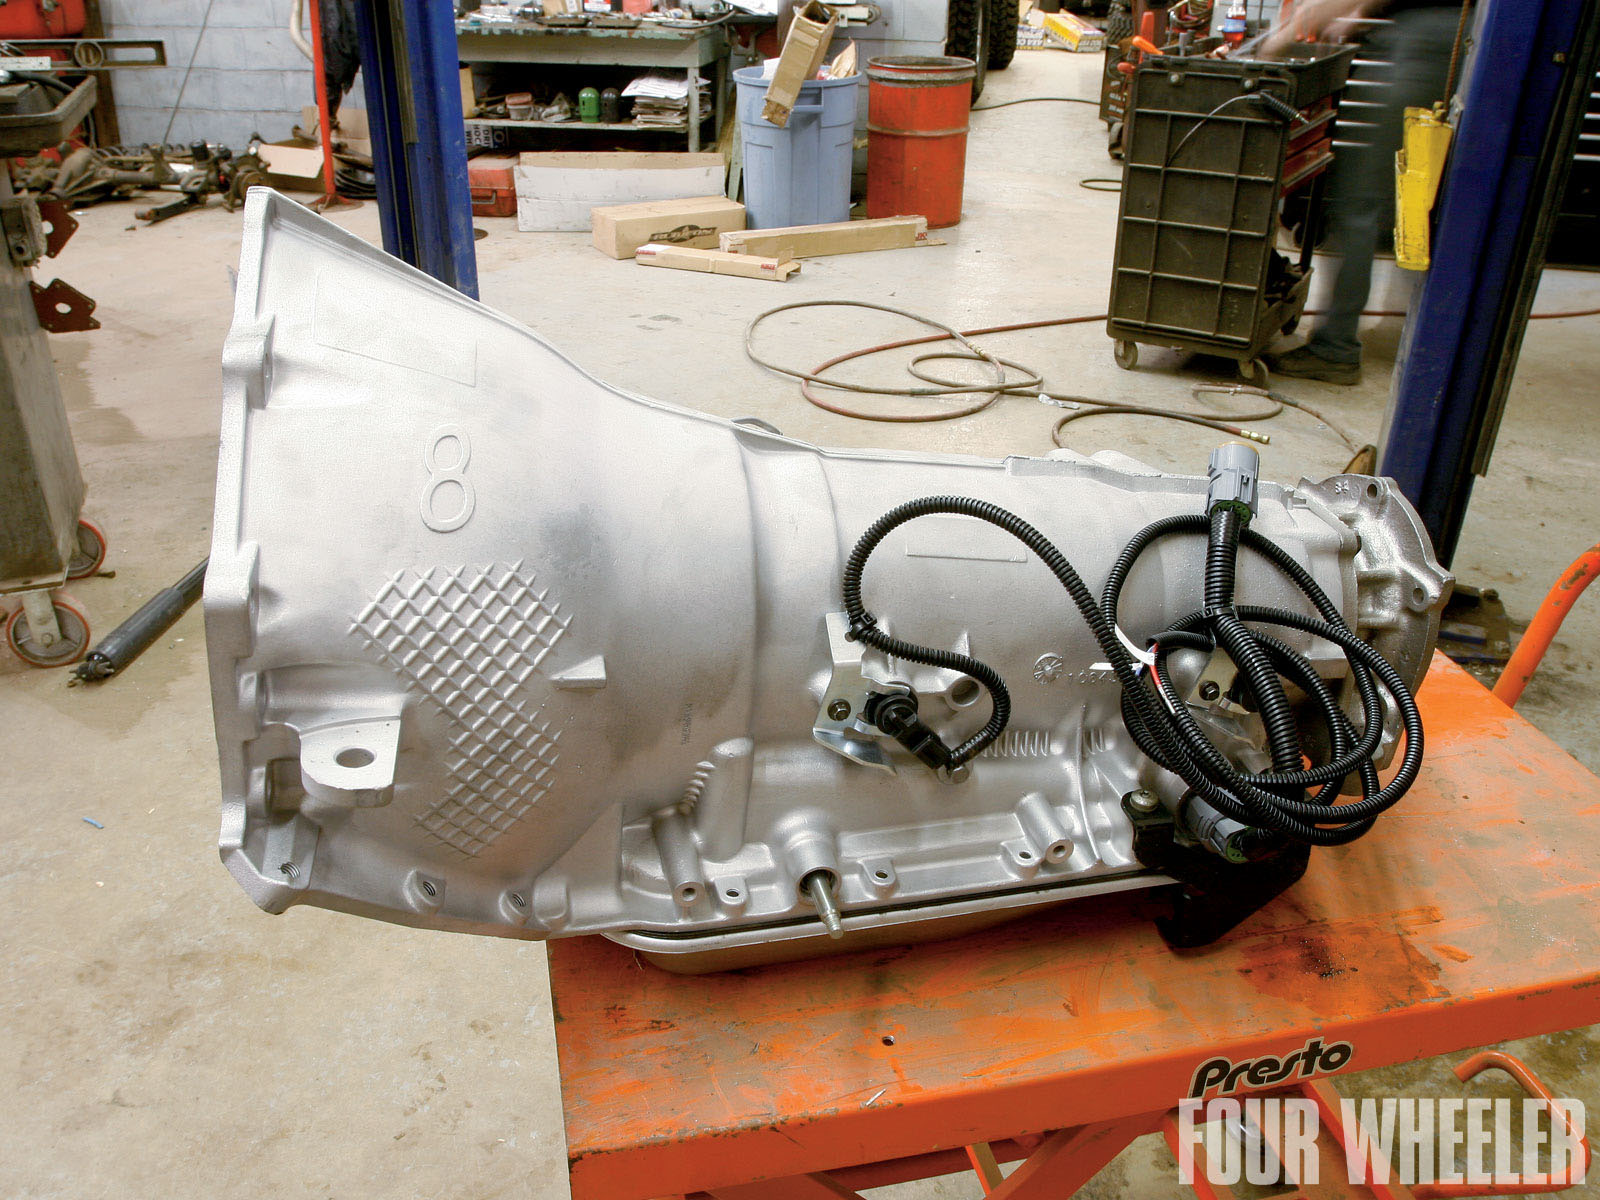 hight resolution of  here s the new 4l80e ready to be installed in the truck